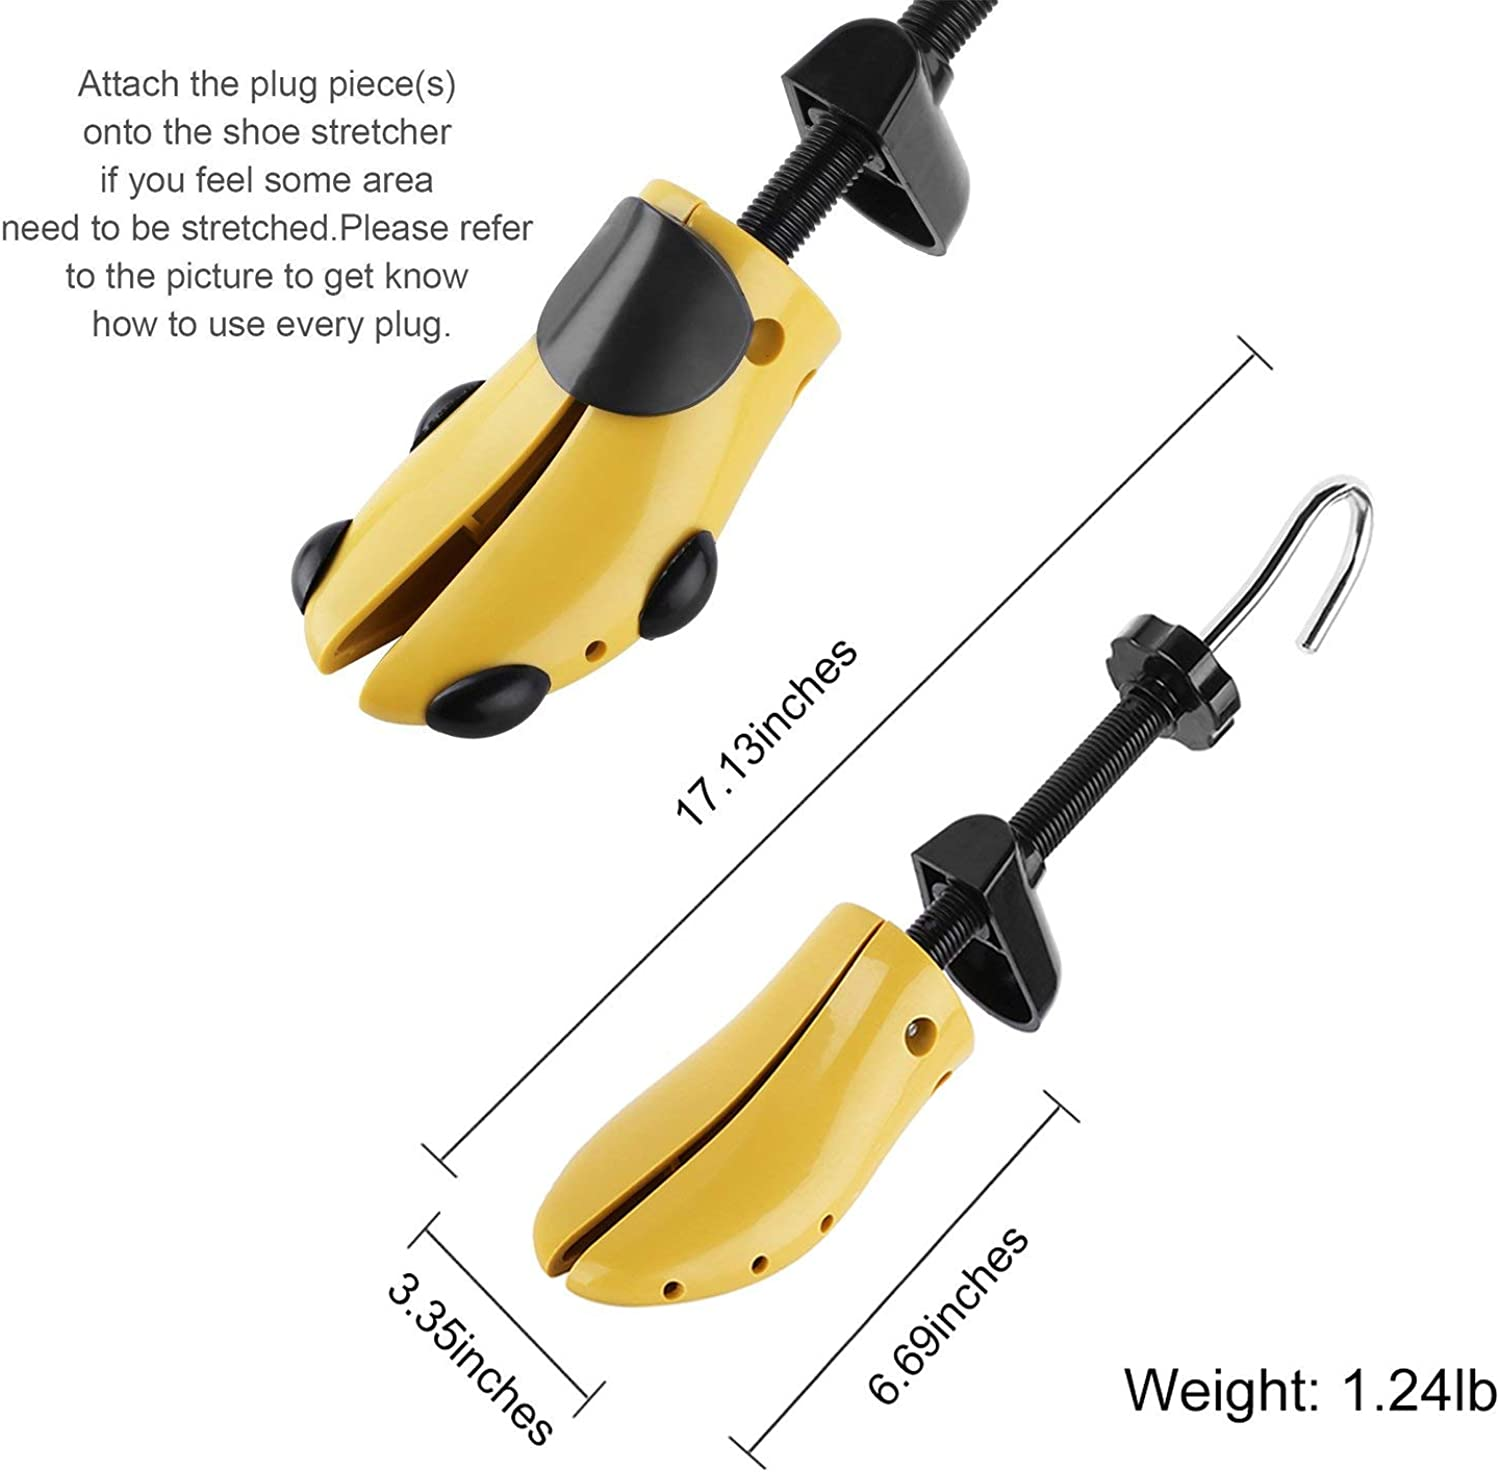 Yellow 7-12.5 Plastic Shoe Stretcher Used to Widen Shoes Lengthen the Plastic Tree Shoes More Durable than Ordinary Wood High-Quality Shoe Stretchers Expander